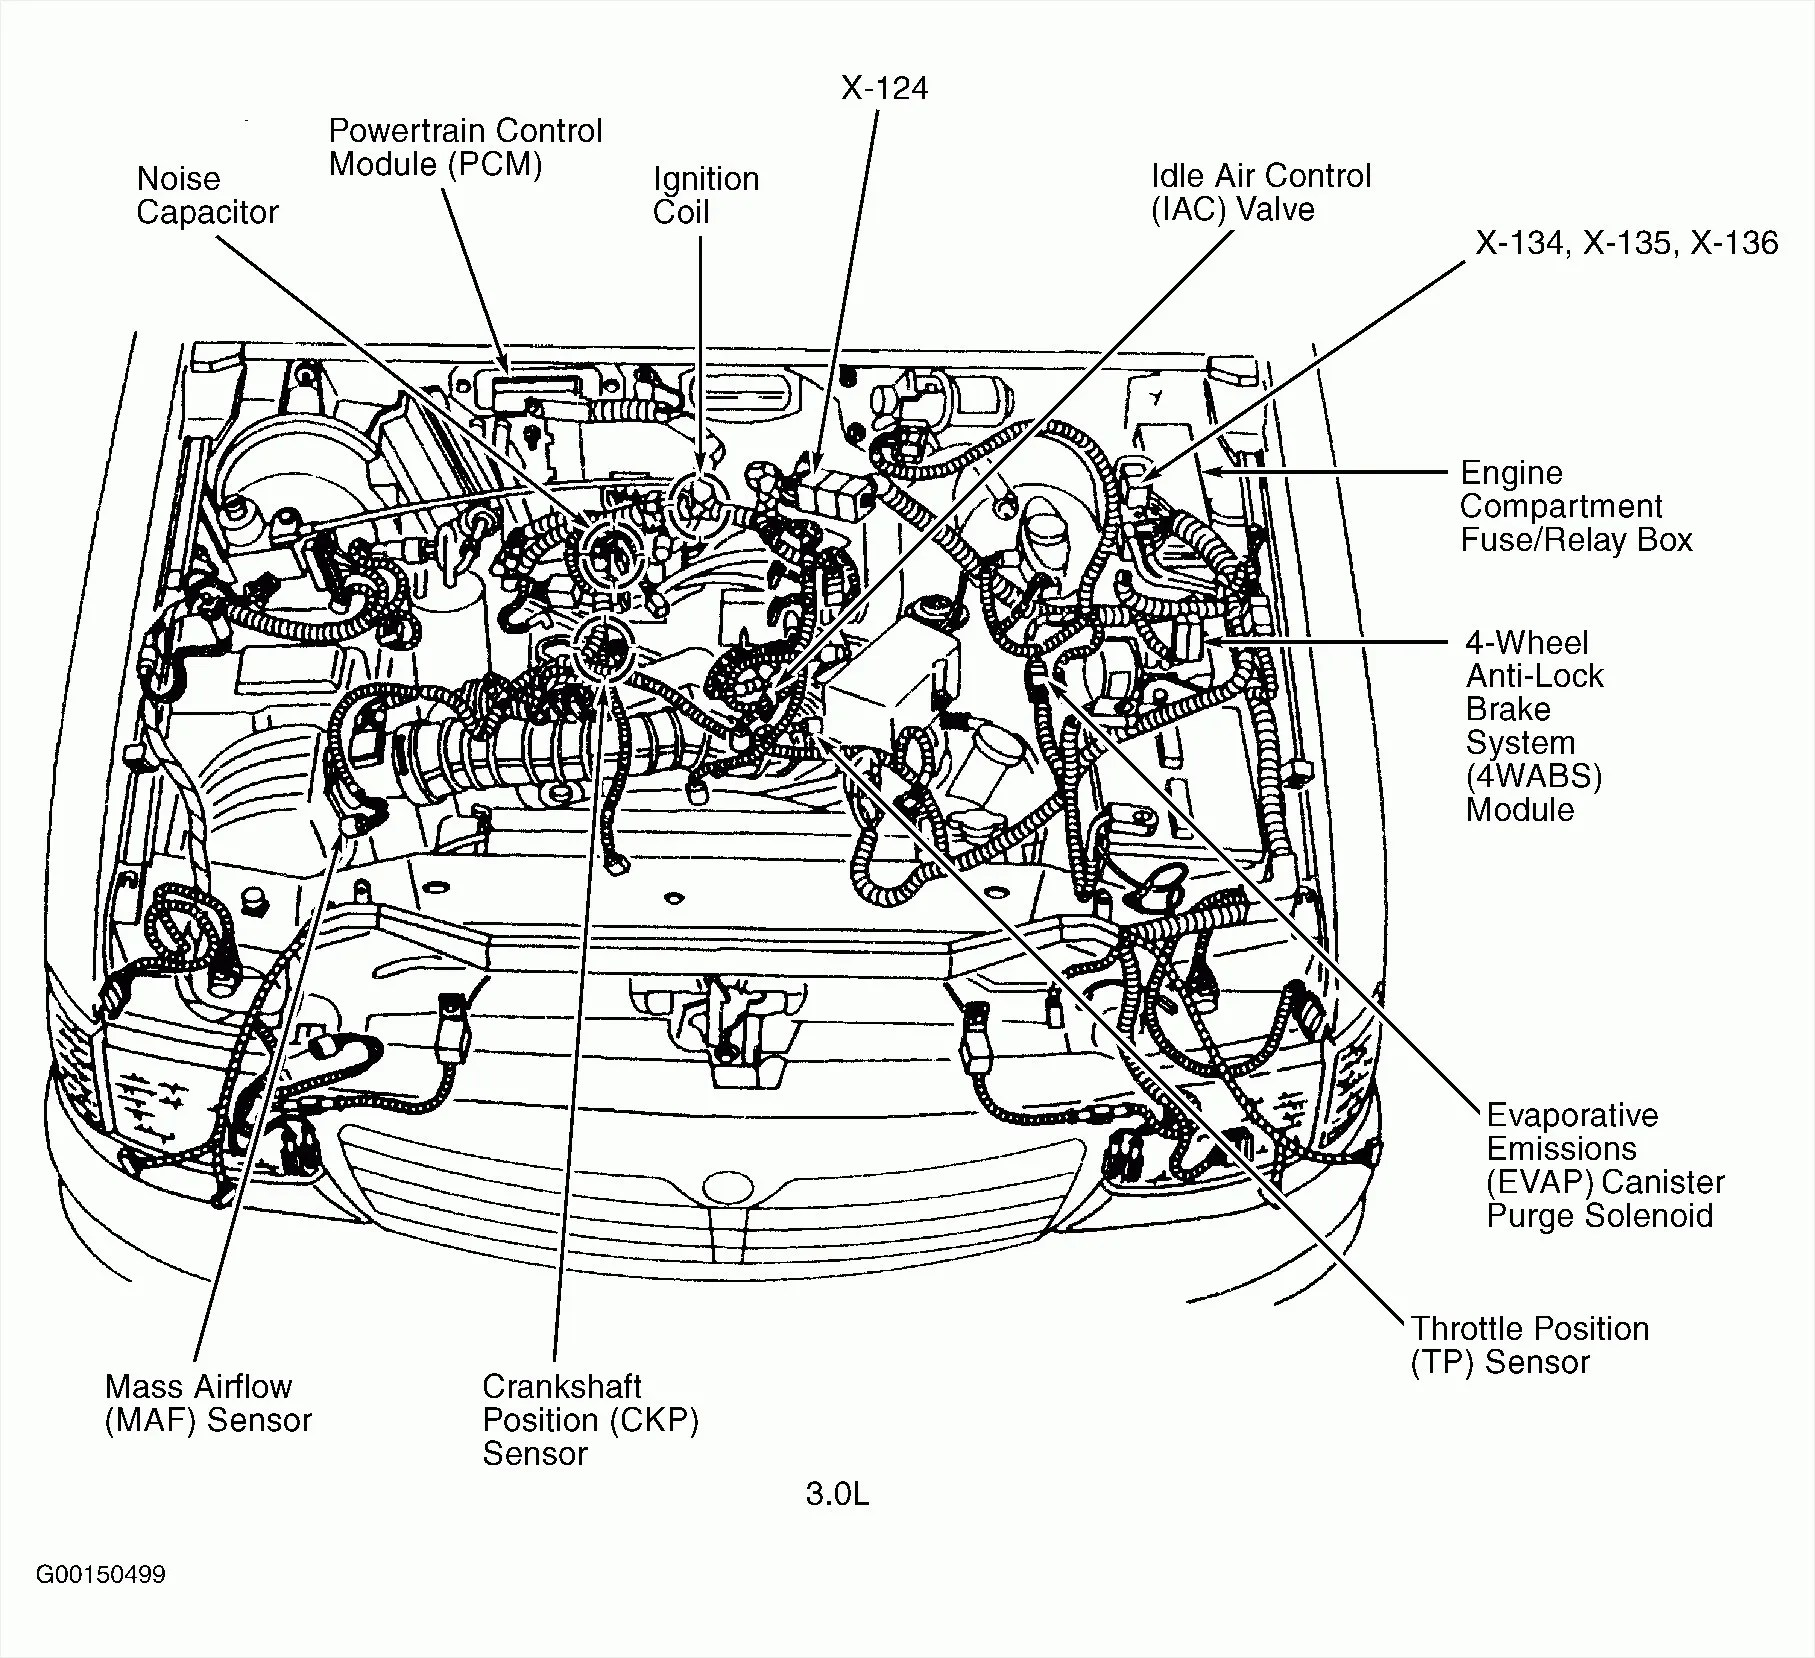 hight resolution of 95 cavalier engine diagram wiring diagram featureschevrolet cavalier 22 engine diagram wiring diagram list 1997 chevy